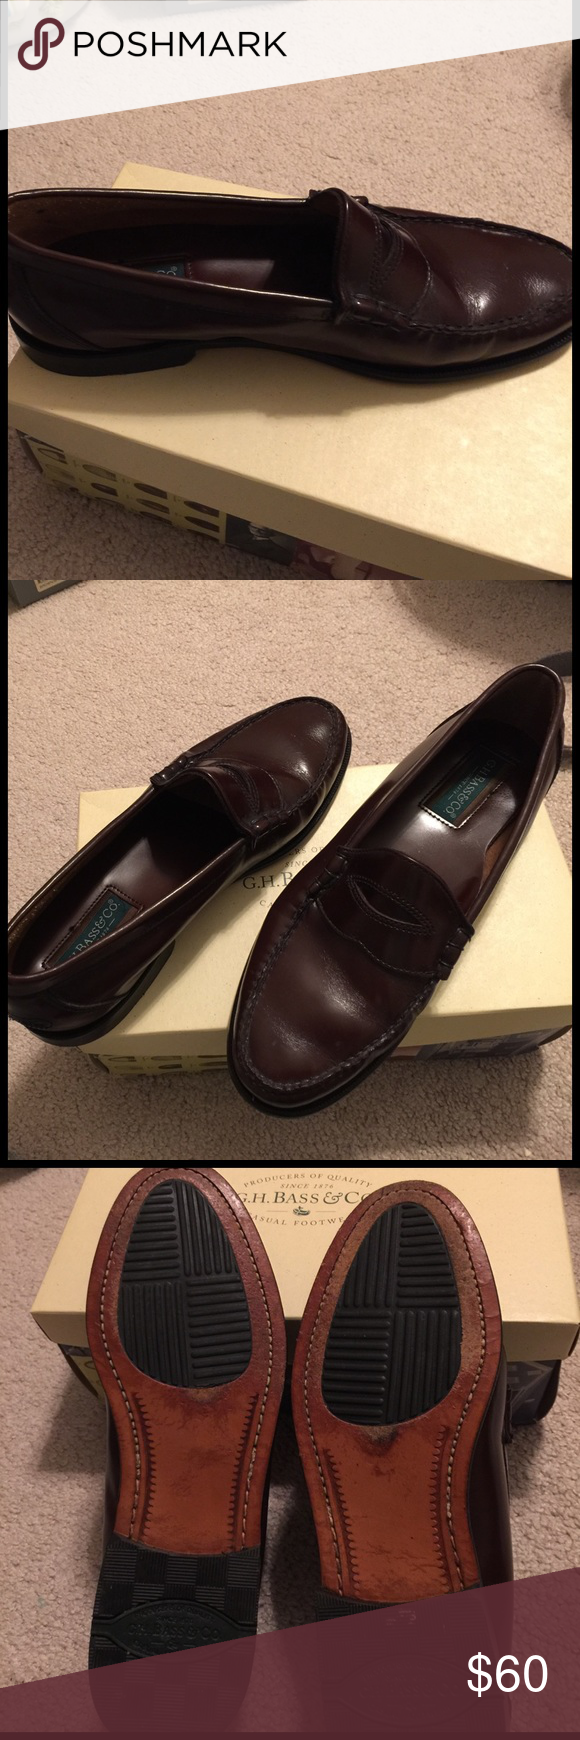 Bass penny loafers - burgundy Husband wore once to wedding and refused to wear them again. Like new. See pic of bottom for wear. Very shiny. Bass Shoes Loafers & Slip-Ons